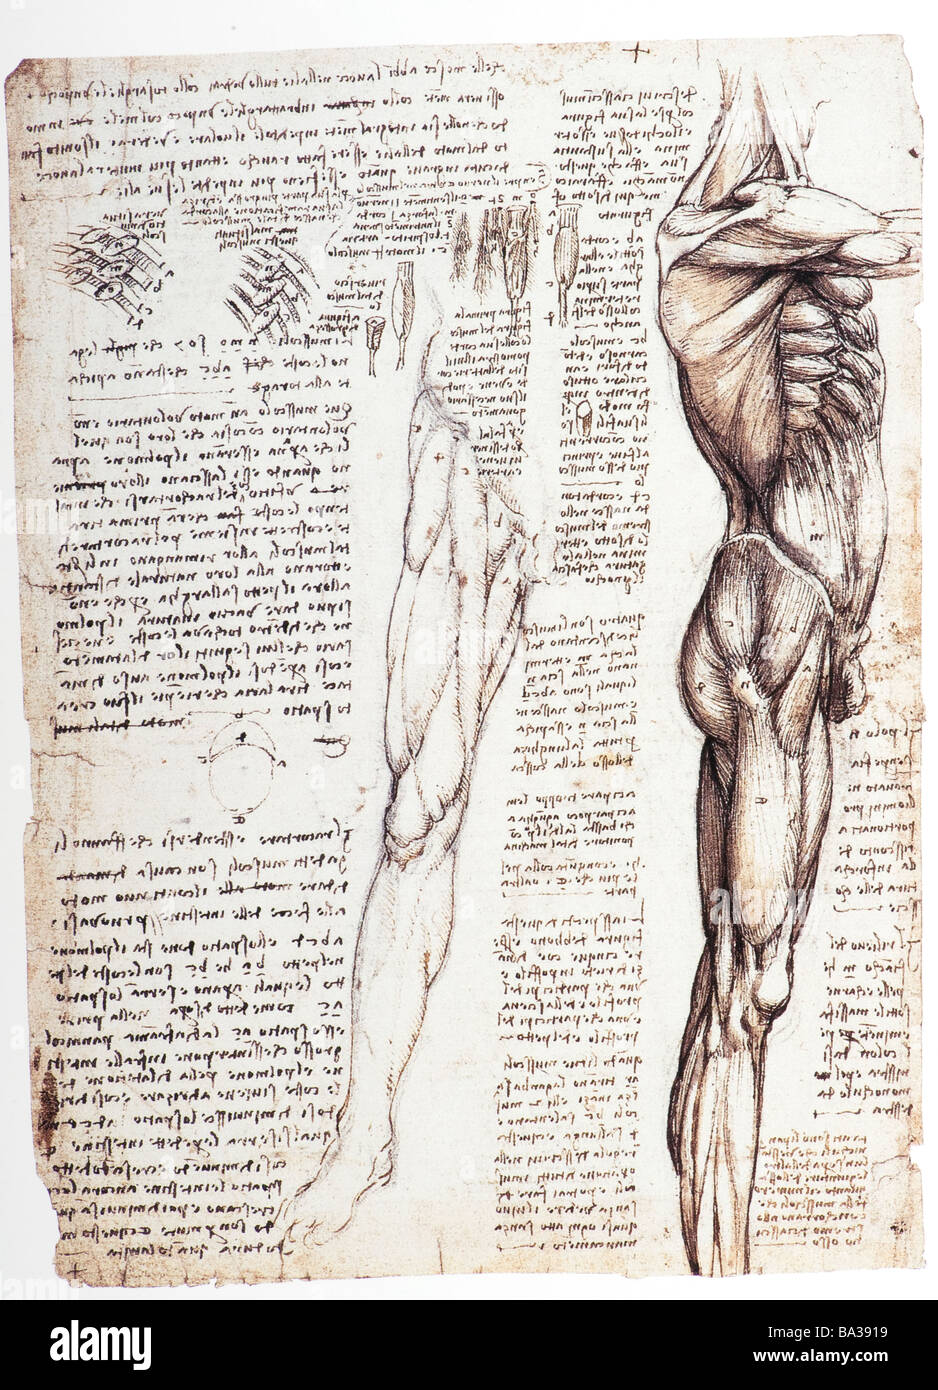 Anatomical Studies of the Muscles of the Torso and Leg by Leonardo da Vinci 1509 pen brown ink - Stock Image